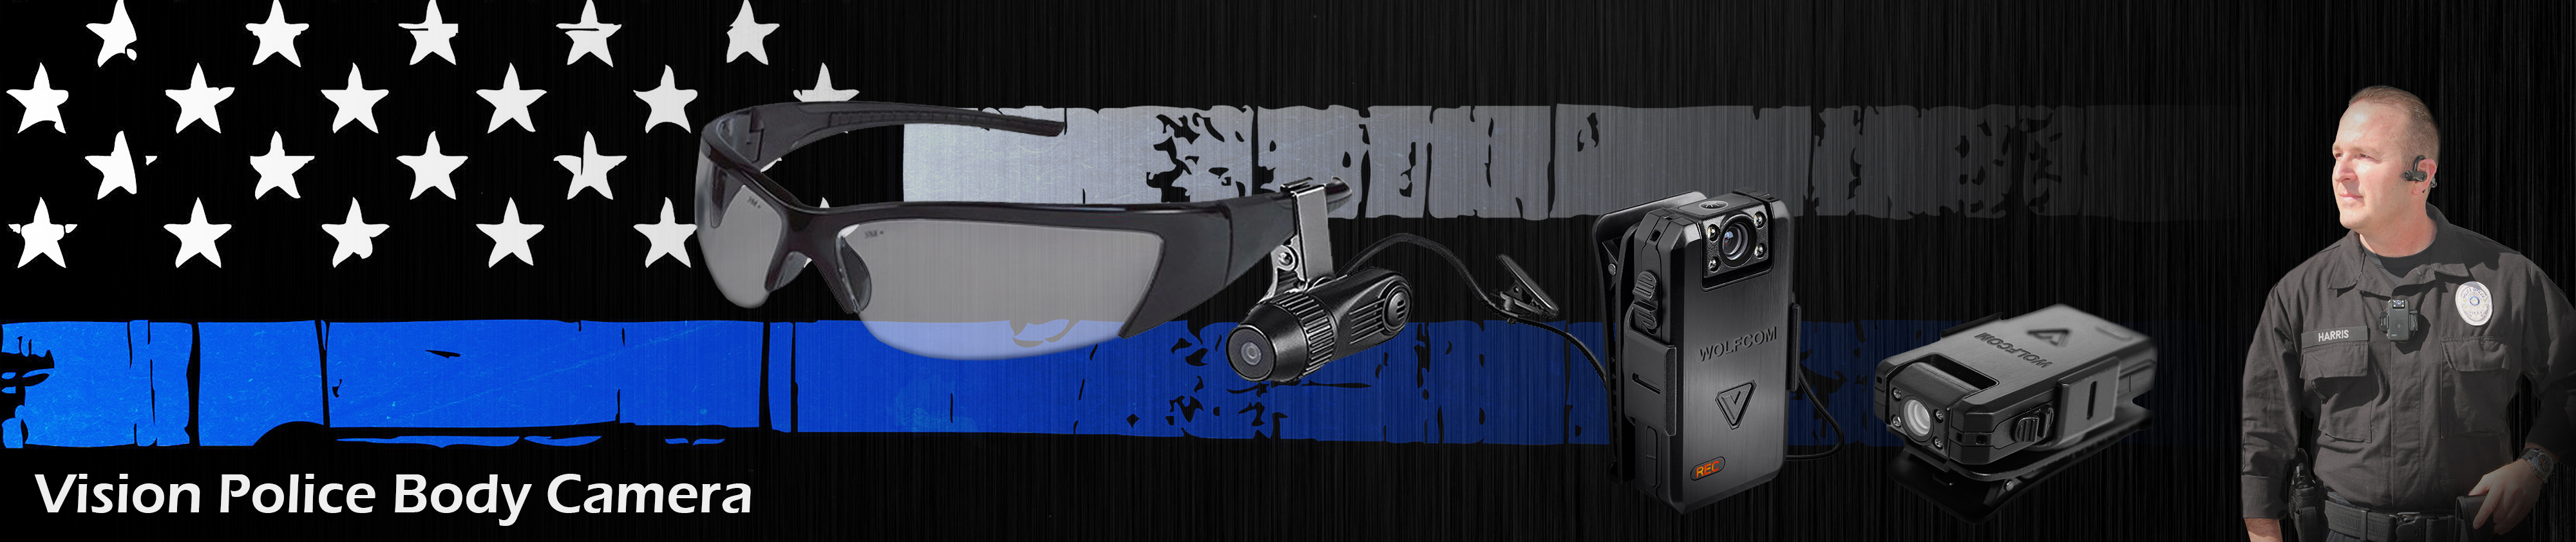 top banner for vision police body camera page on wolfcom usa website